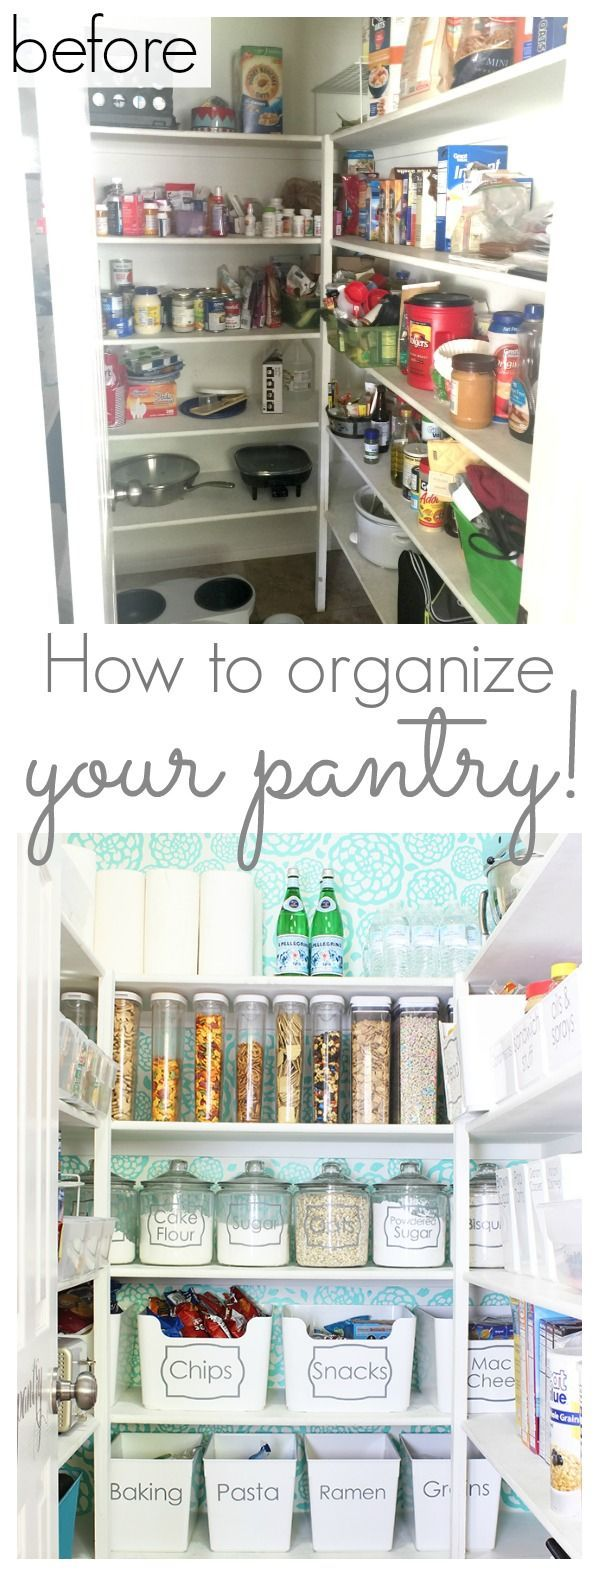 How to organize your pantry - Tons of tips and ideas for organizing and decorating your pantry! - www.classyclutter.net